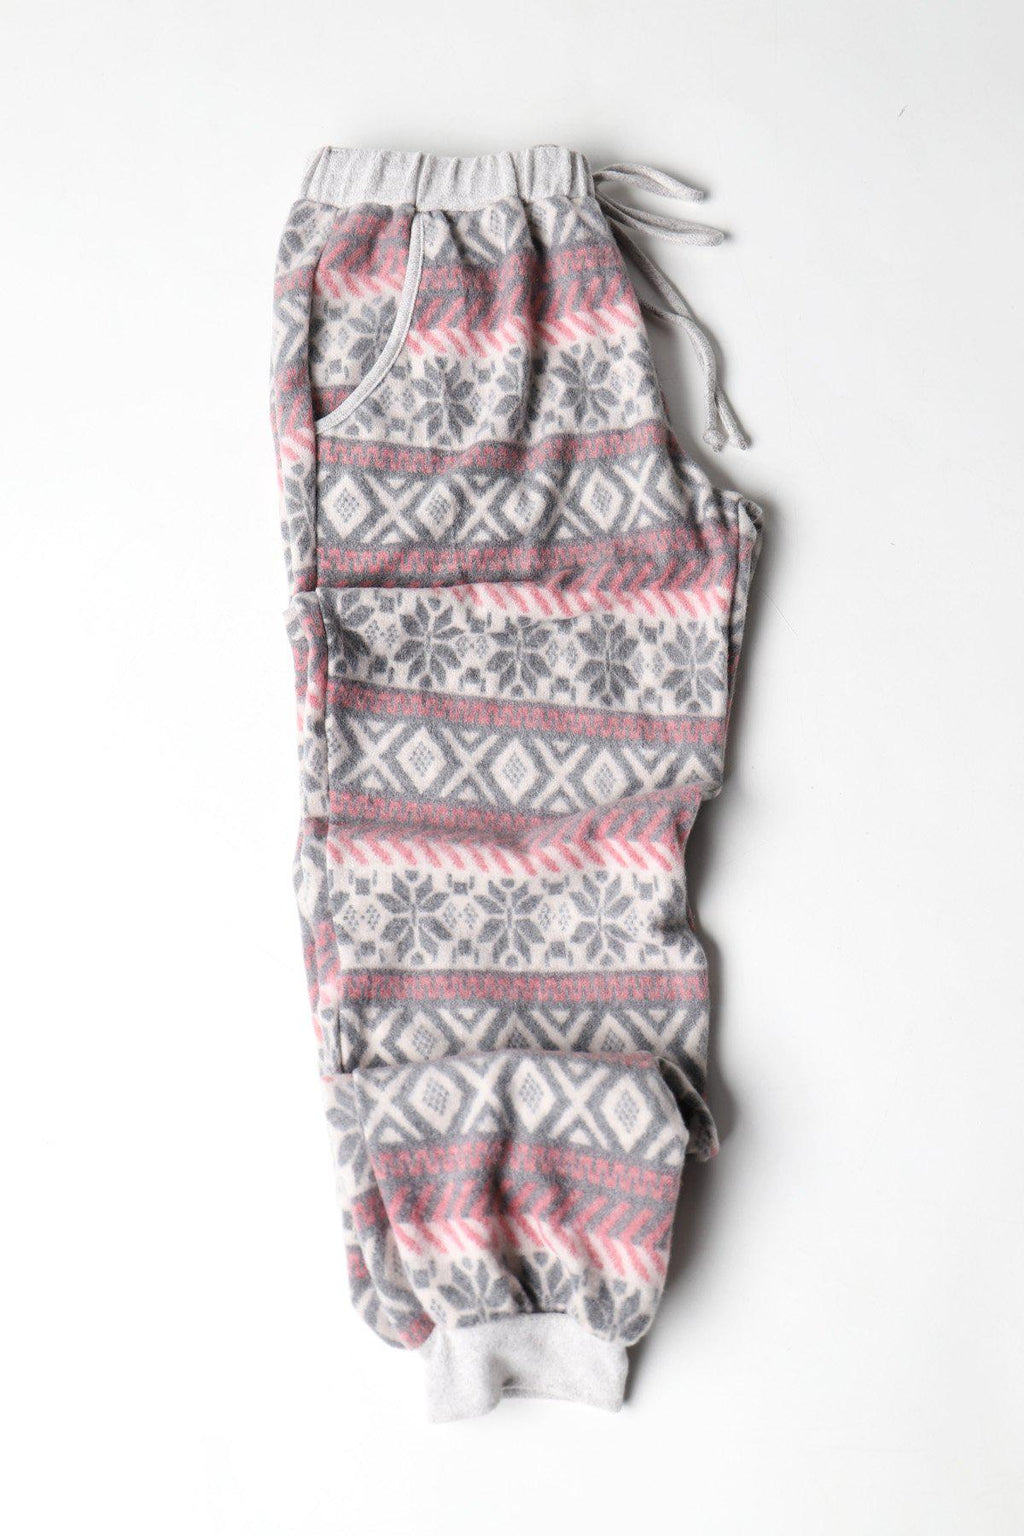 Aspen Fleeced Christmas PJ Bottoms - Wine/Black